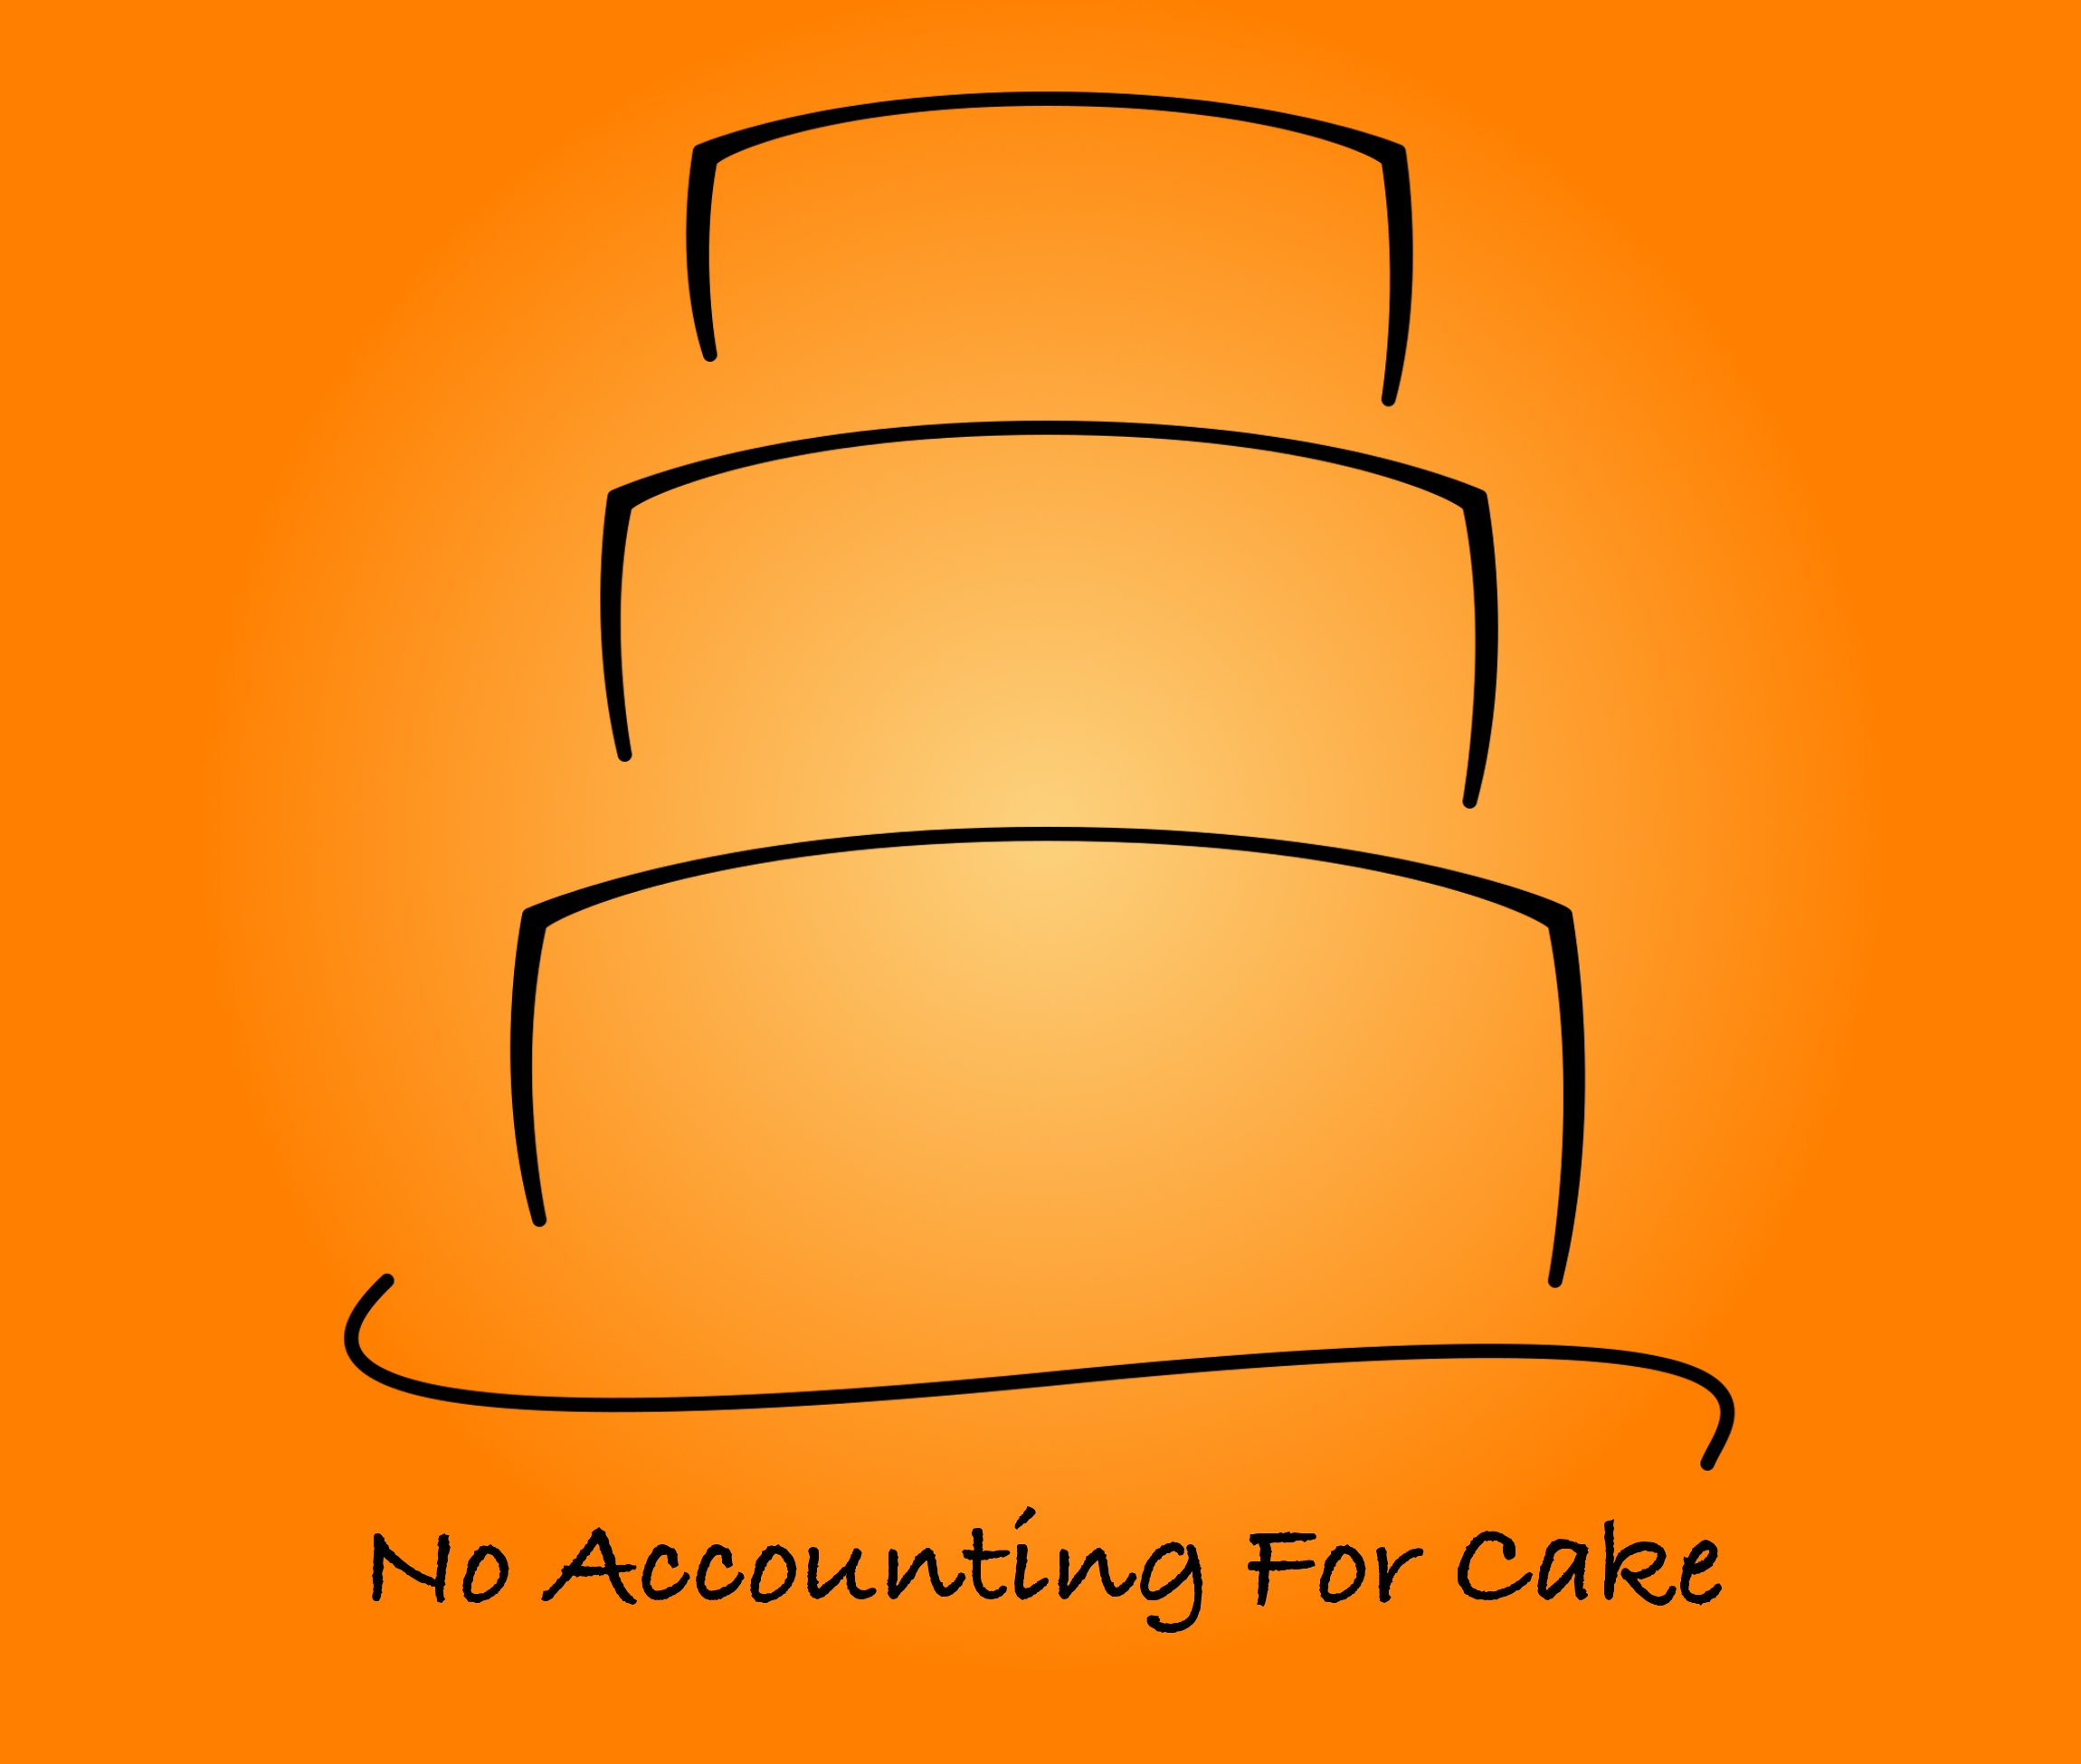 No Accounting For Cake